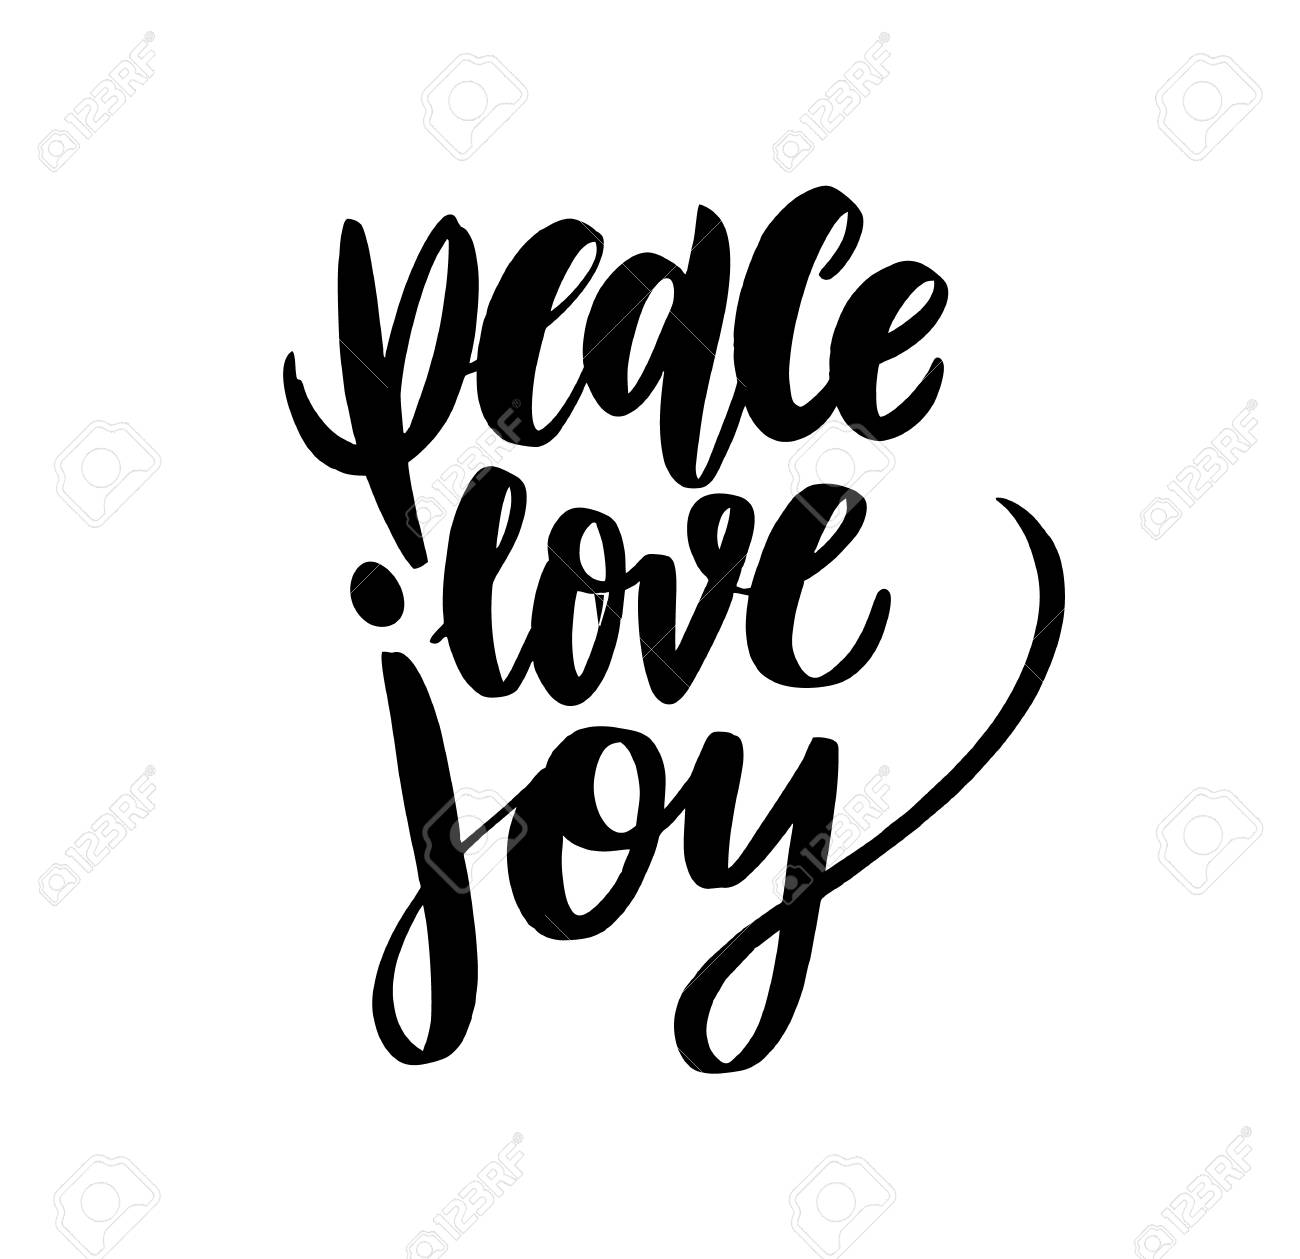 Peace Christmas Quotes.Merry Christmas Vintage Calligraphic Quote Peace Love Joy Vector